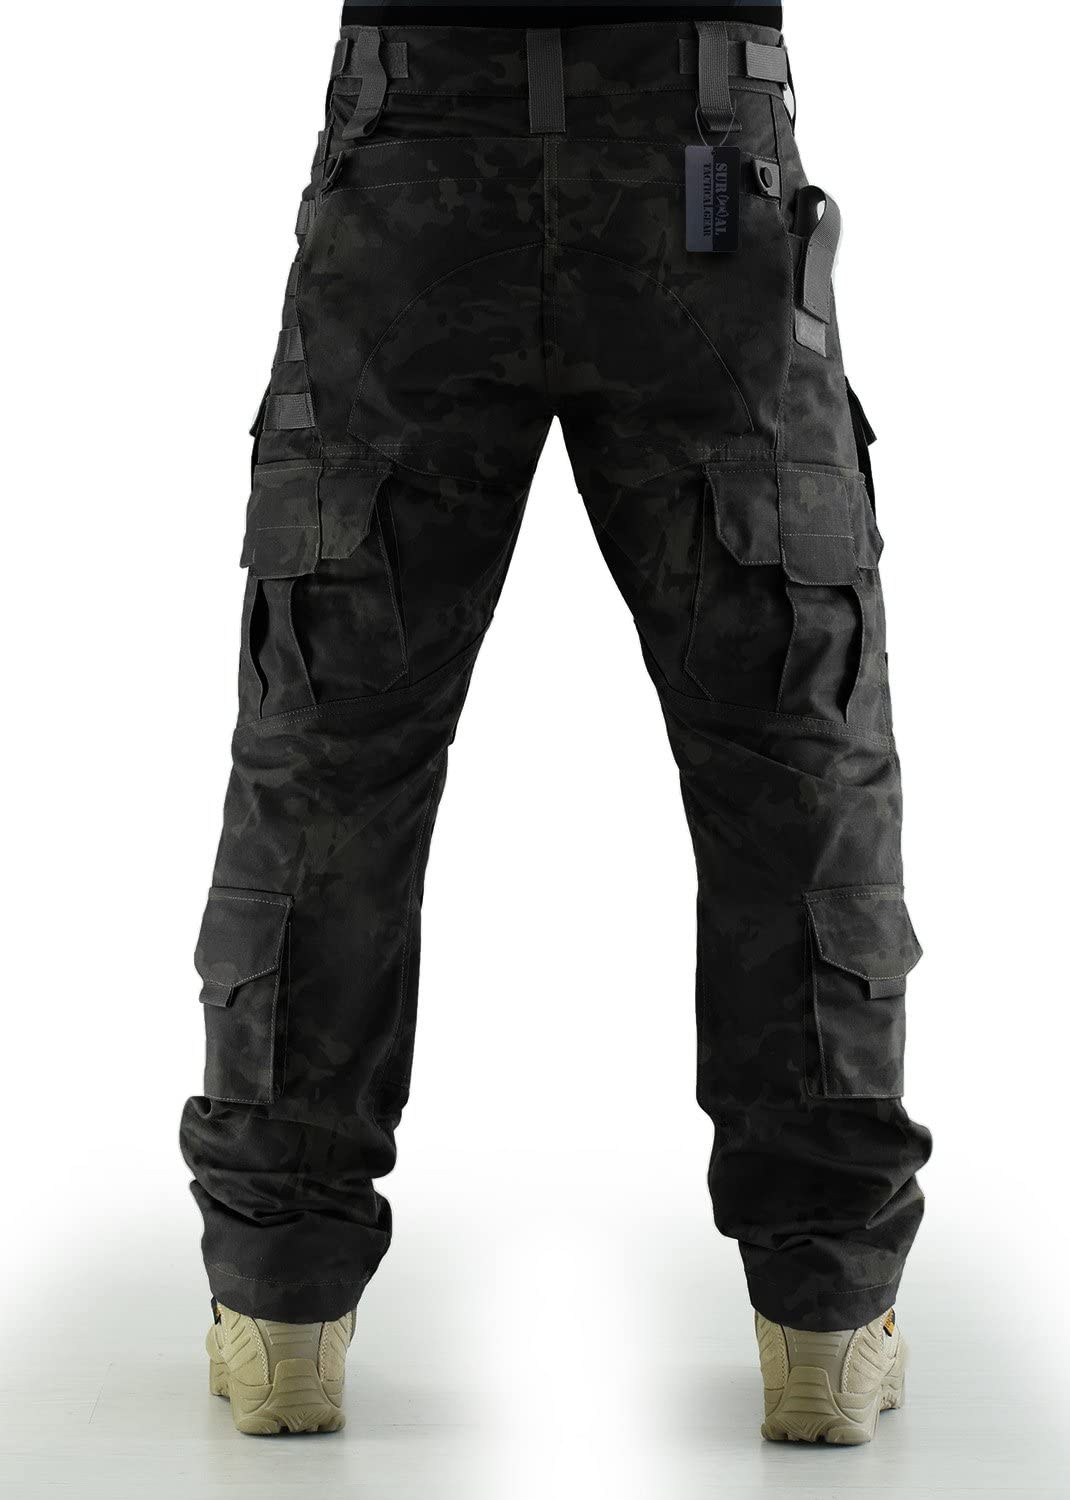 ZAPT Breathable Ripstop Fabric Pants Military Combat Multi-Pocket Molle Tactical Pants with EVA Knee Pads